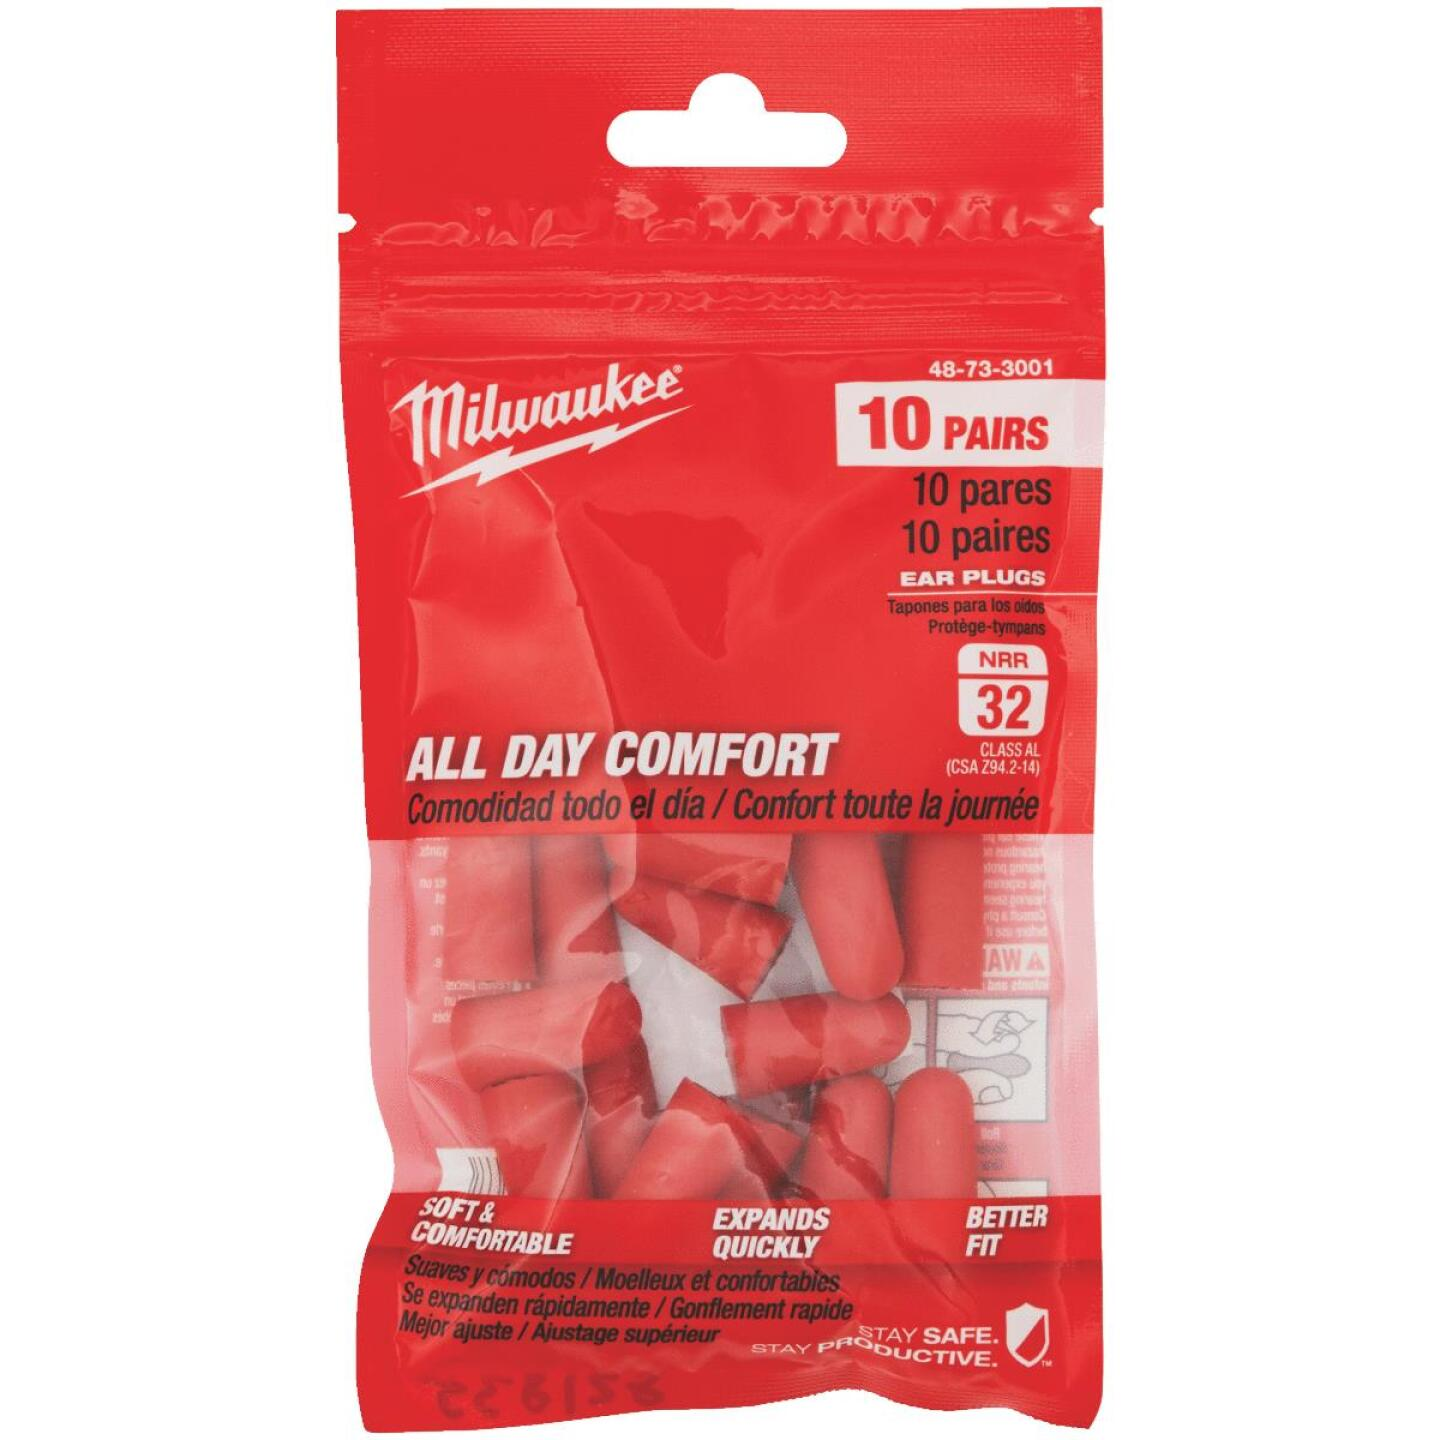 Milwaukee Foam 32 dB Ear Plugs (10-Pair) Image 1